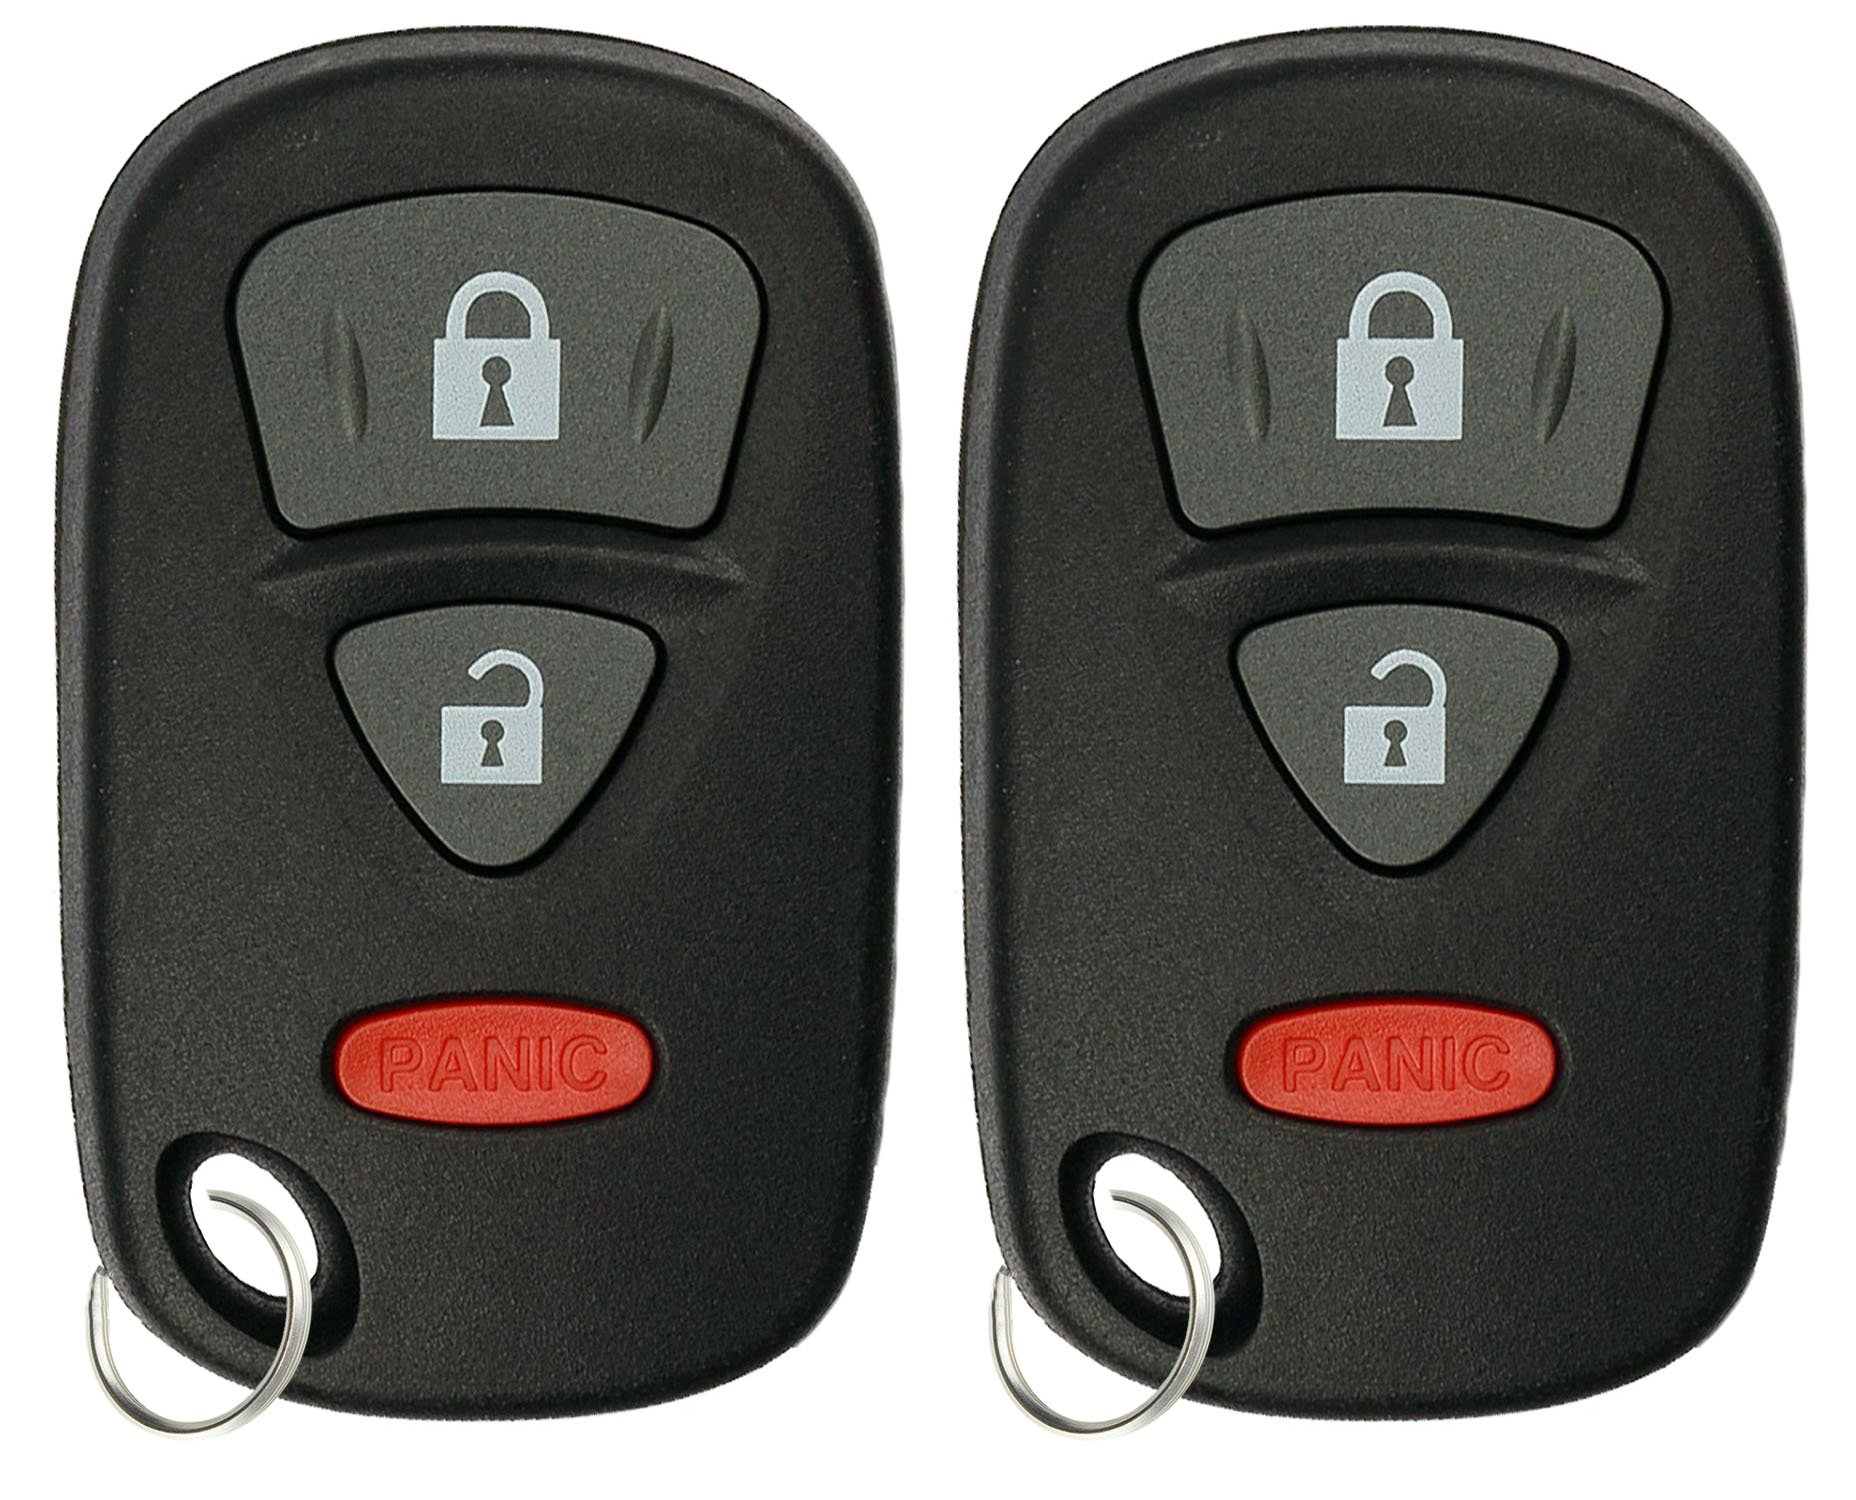 KeylessOption Keyless Entry Remote Car Key Fob Case Shell Pad Replacement for KBRTS005